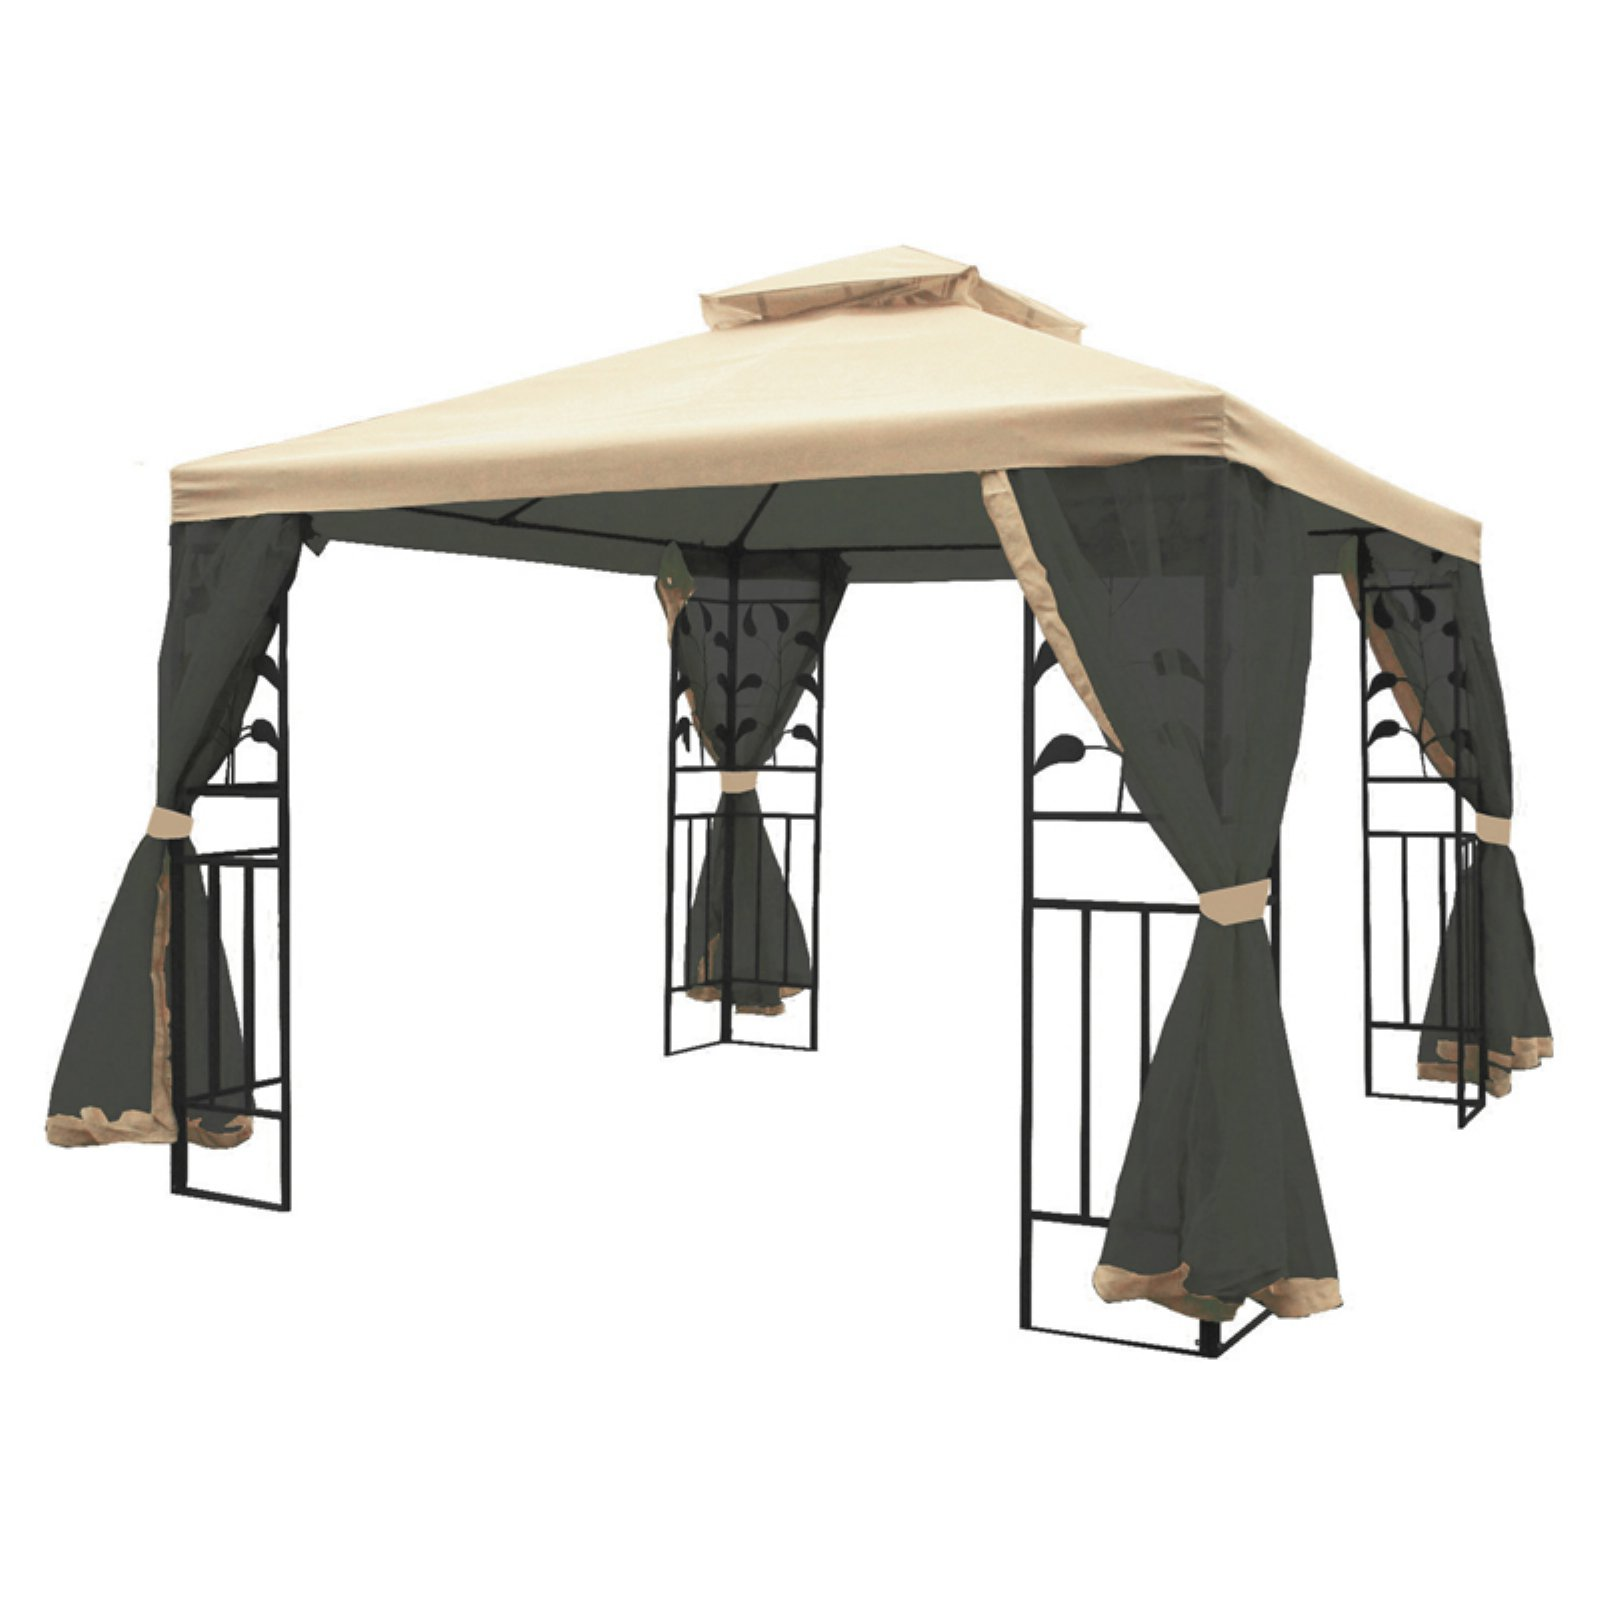 MAOS 10 Ft. W x 10 Ft. D Steel Gazebo with Mosquito Netting ...